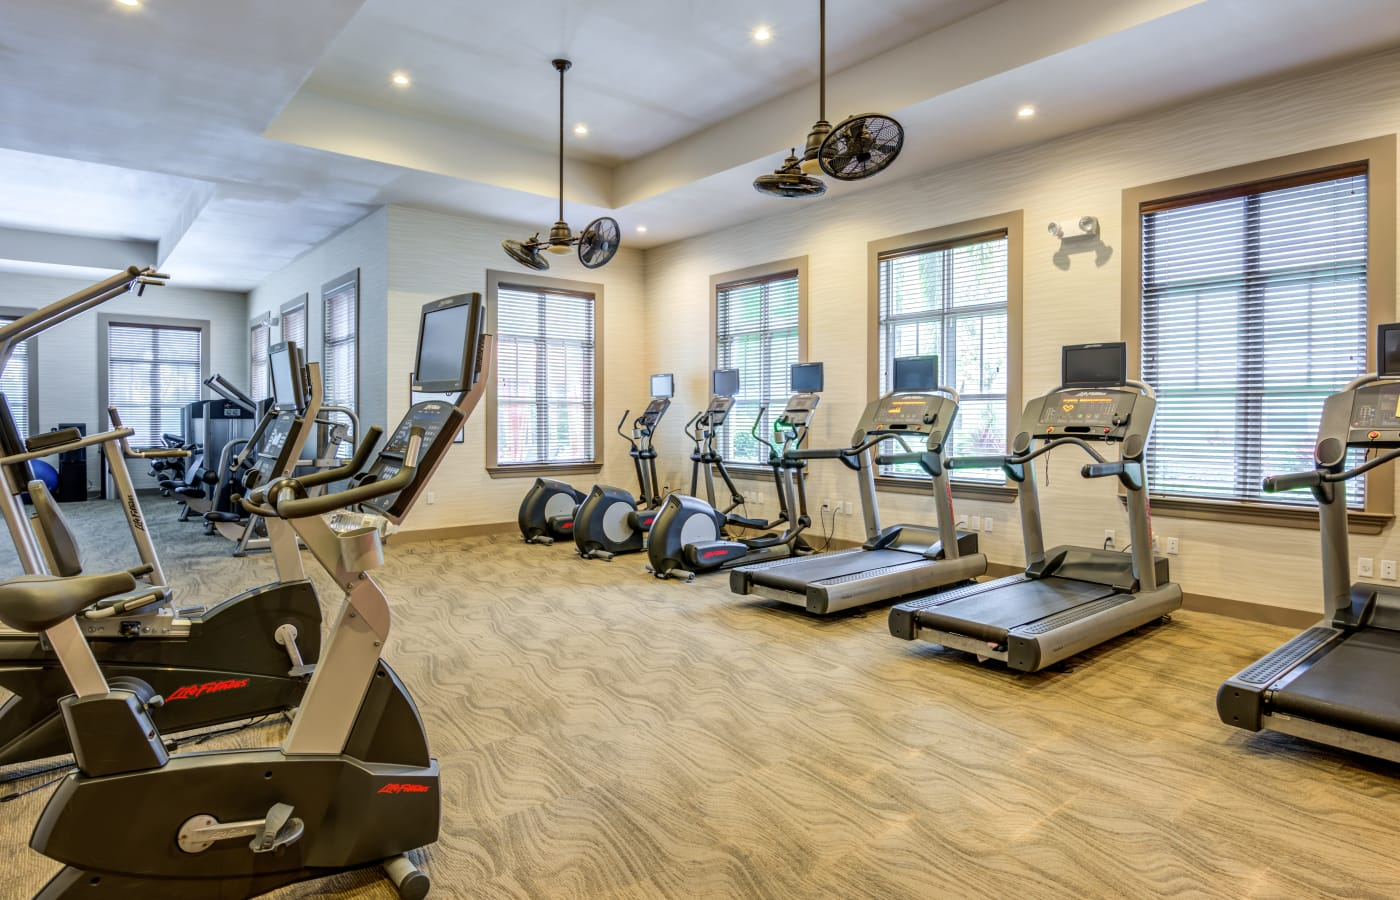 Fitness center at IMT Miramar in Miramar, Florida